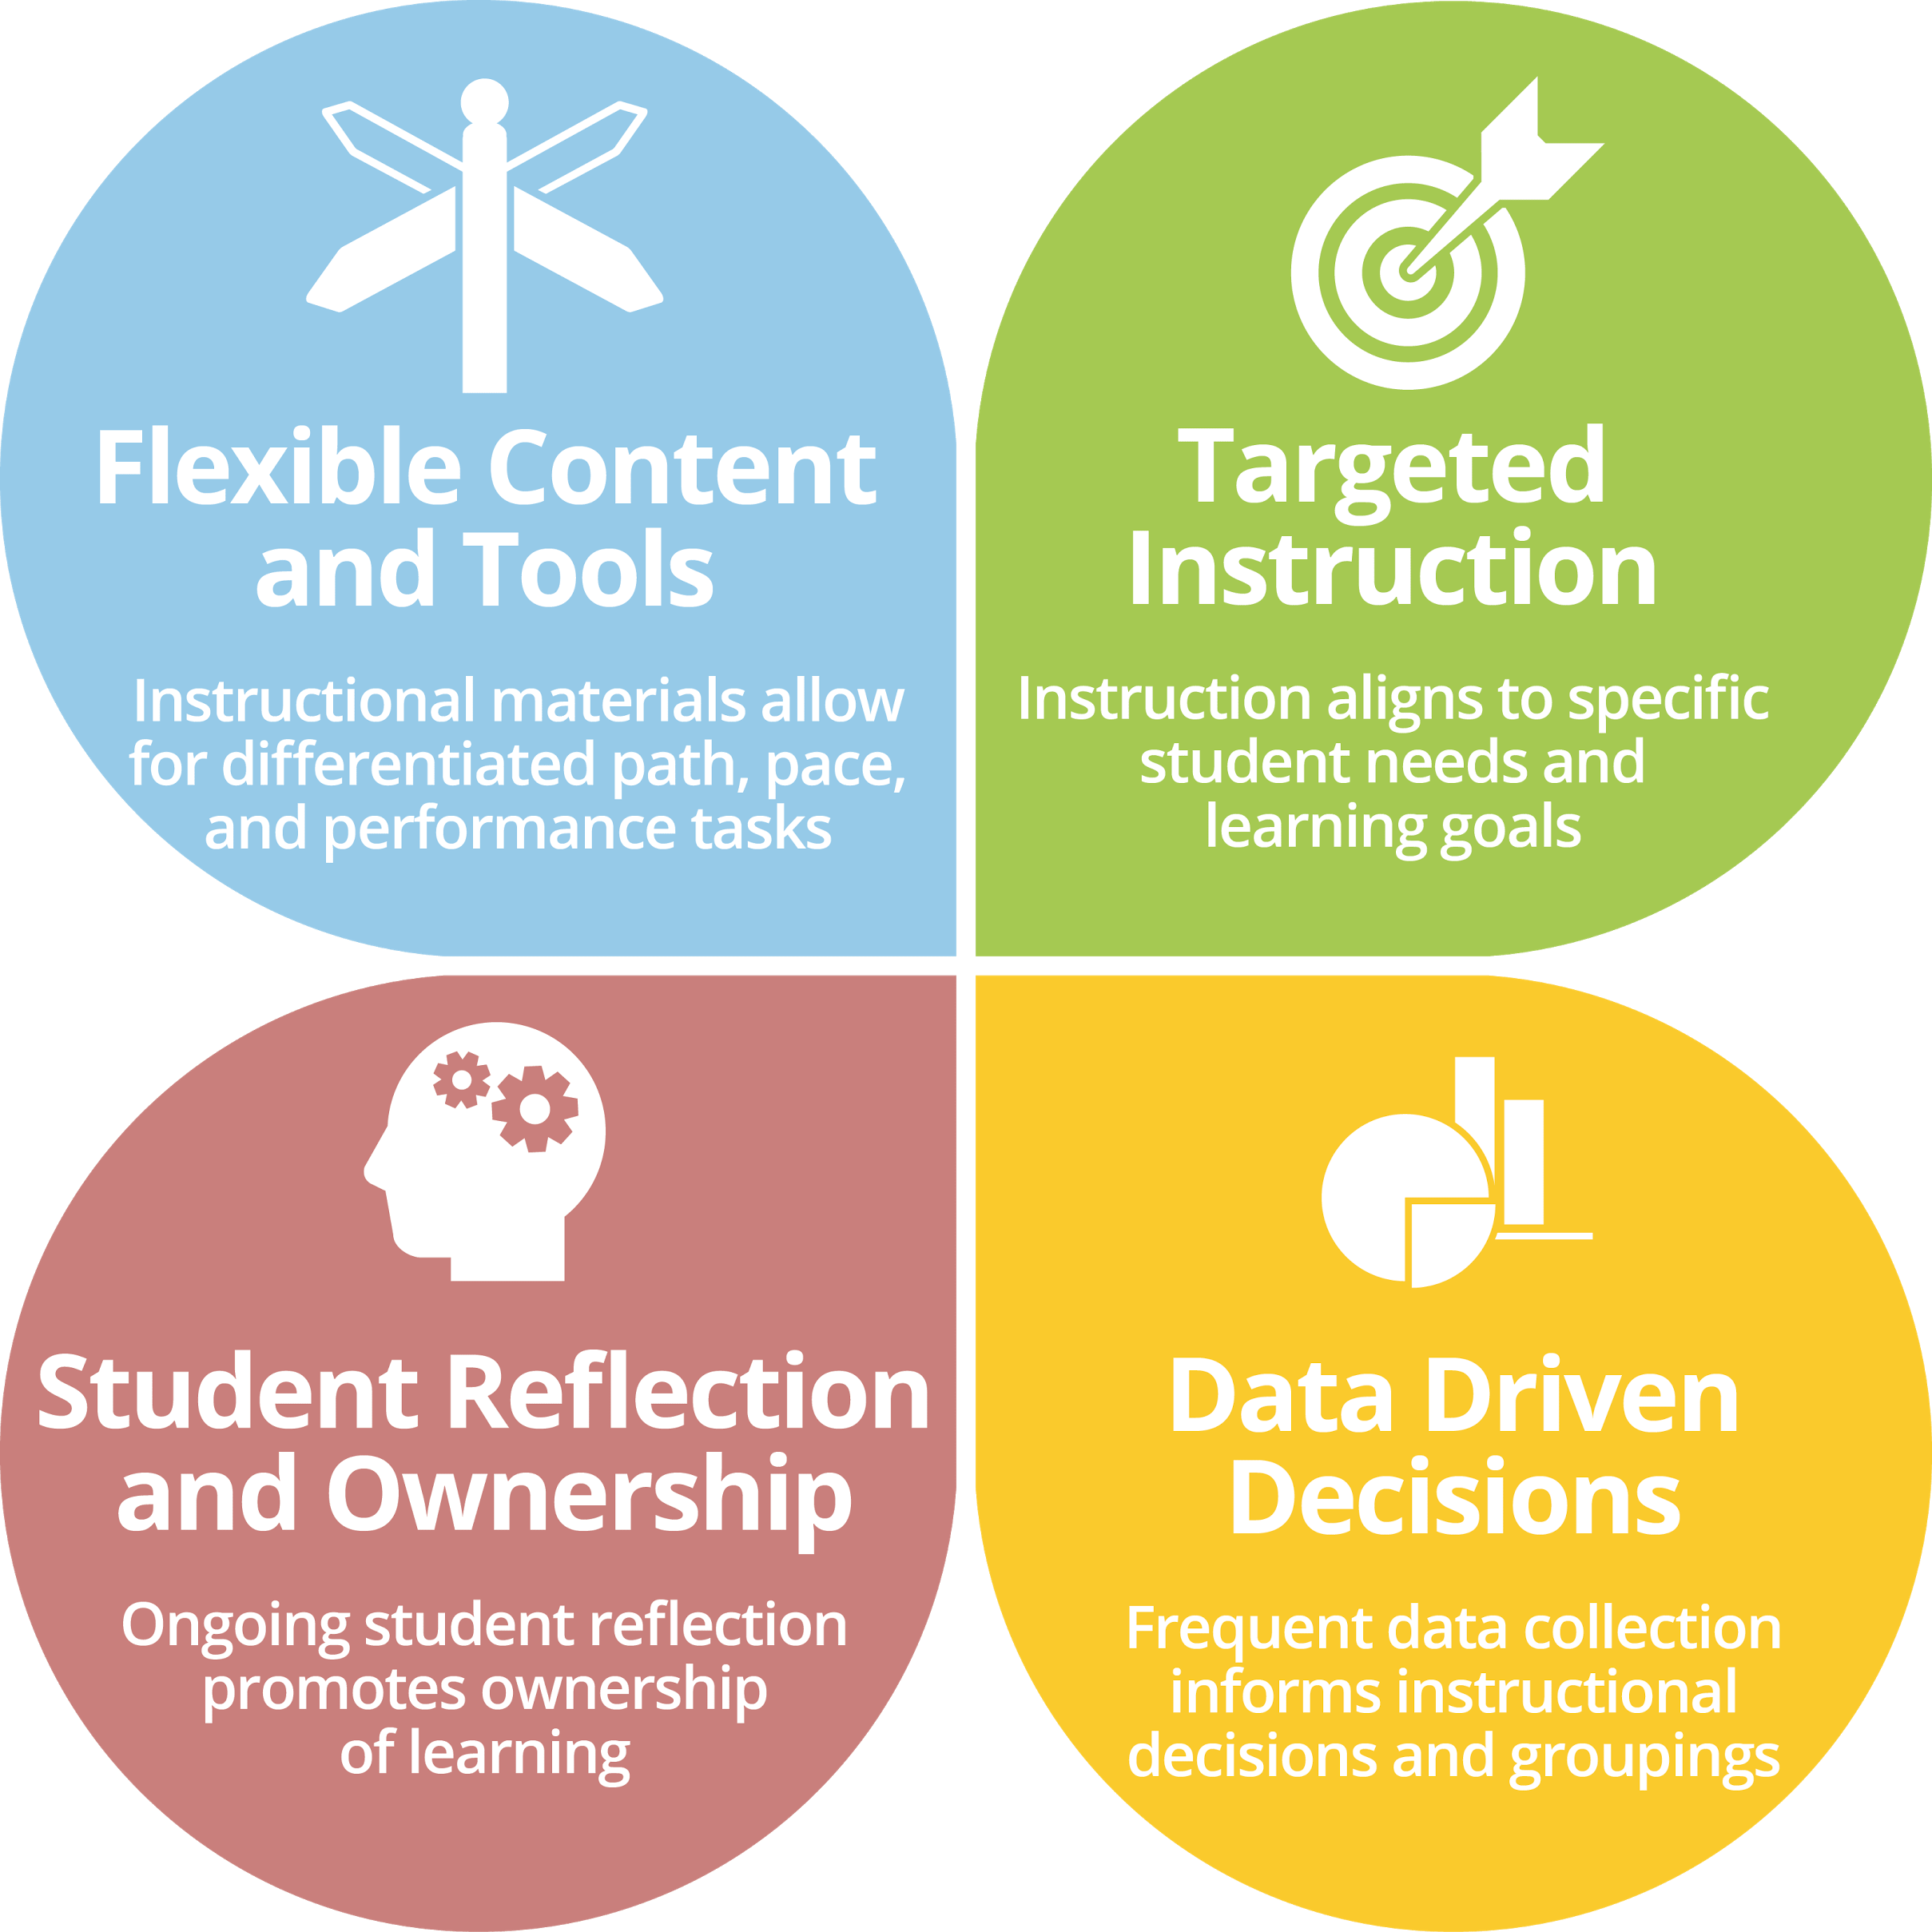 A graphic outlining the core four elements of personalized learning from Education Elements: Flexible Content and Tools, Targeted Instruction, Student Reflection and Ownership, and Data-Driven Decisions